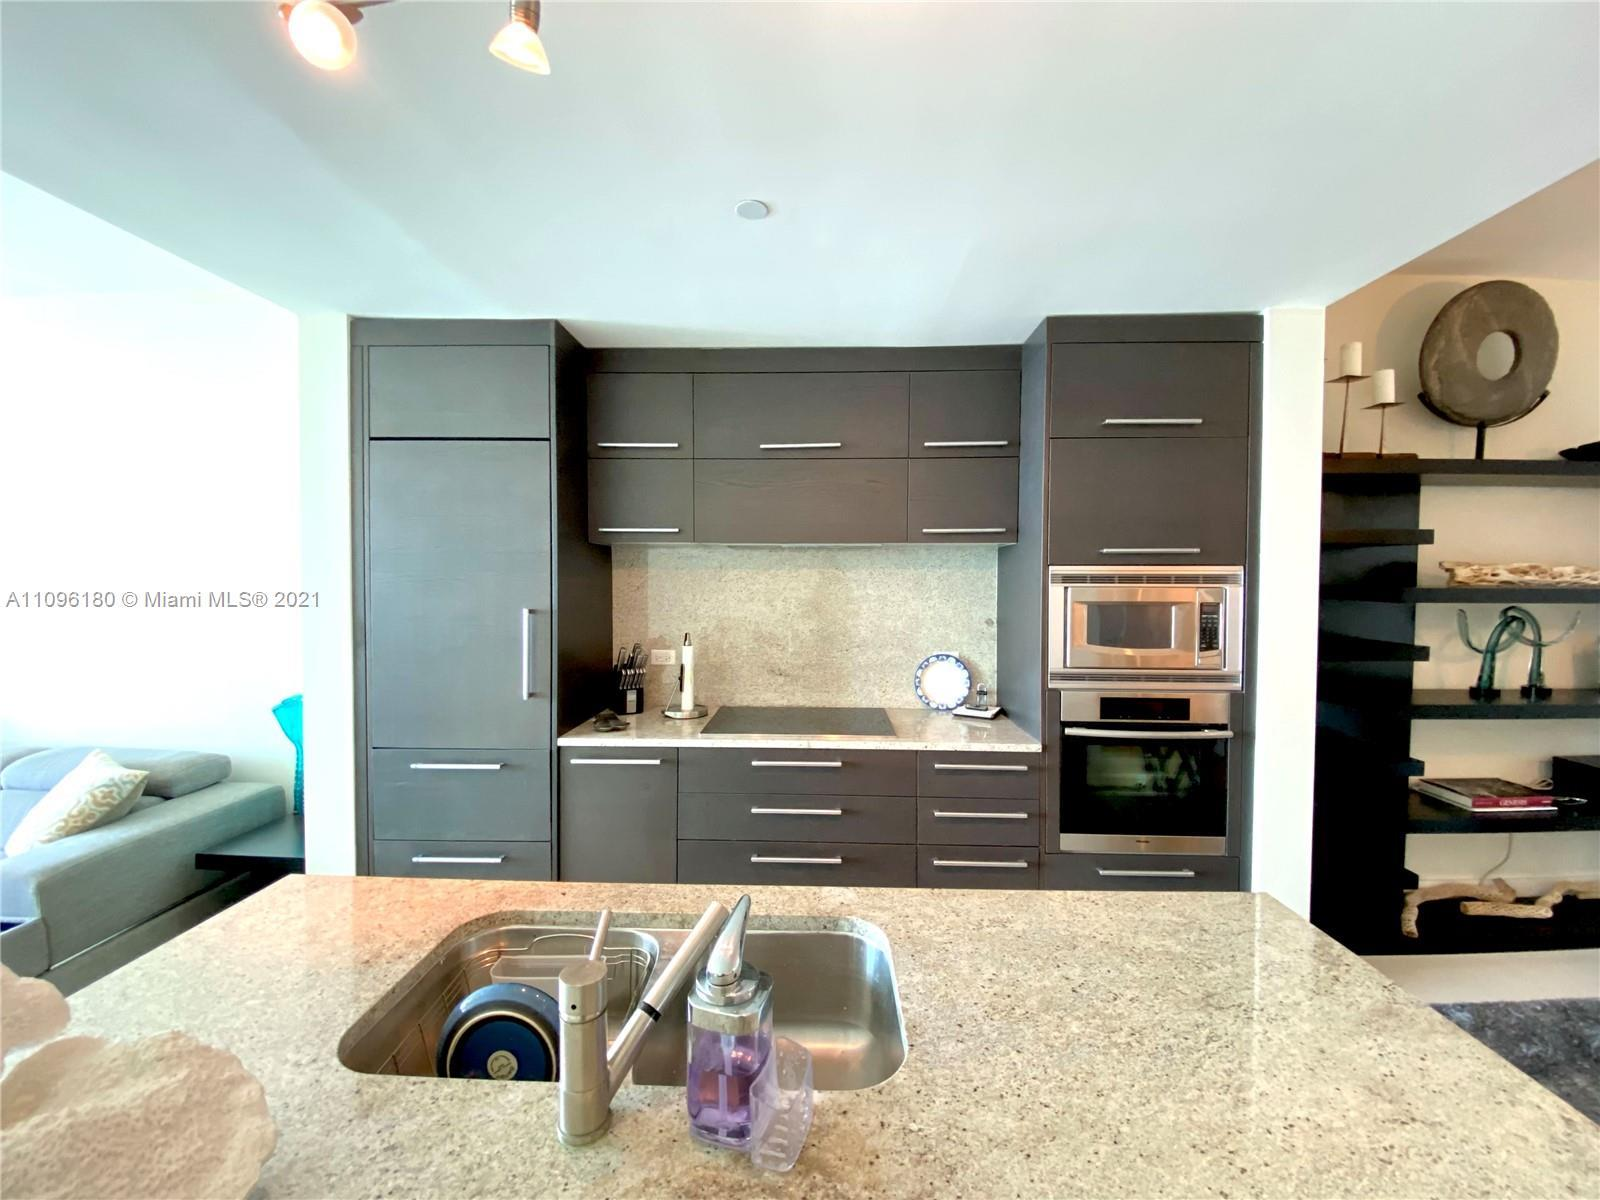 Stunning Apartment located at 900 Biscayne Bay. 1 BED, 2 BATHS. Offers a number of lavish amenities,